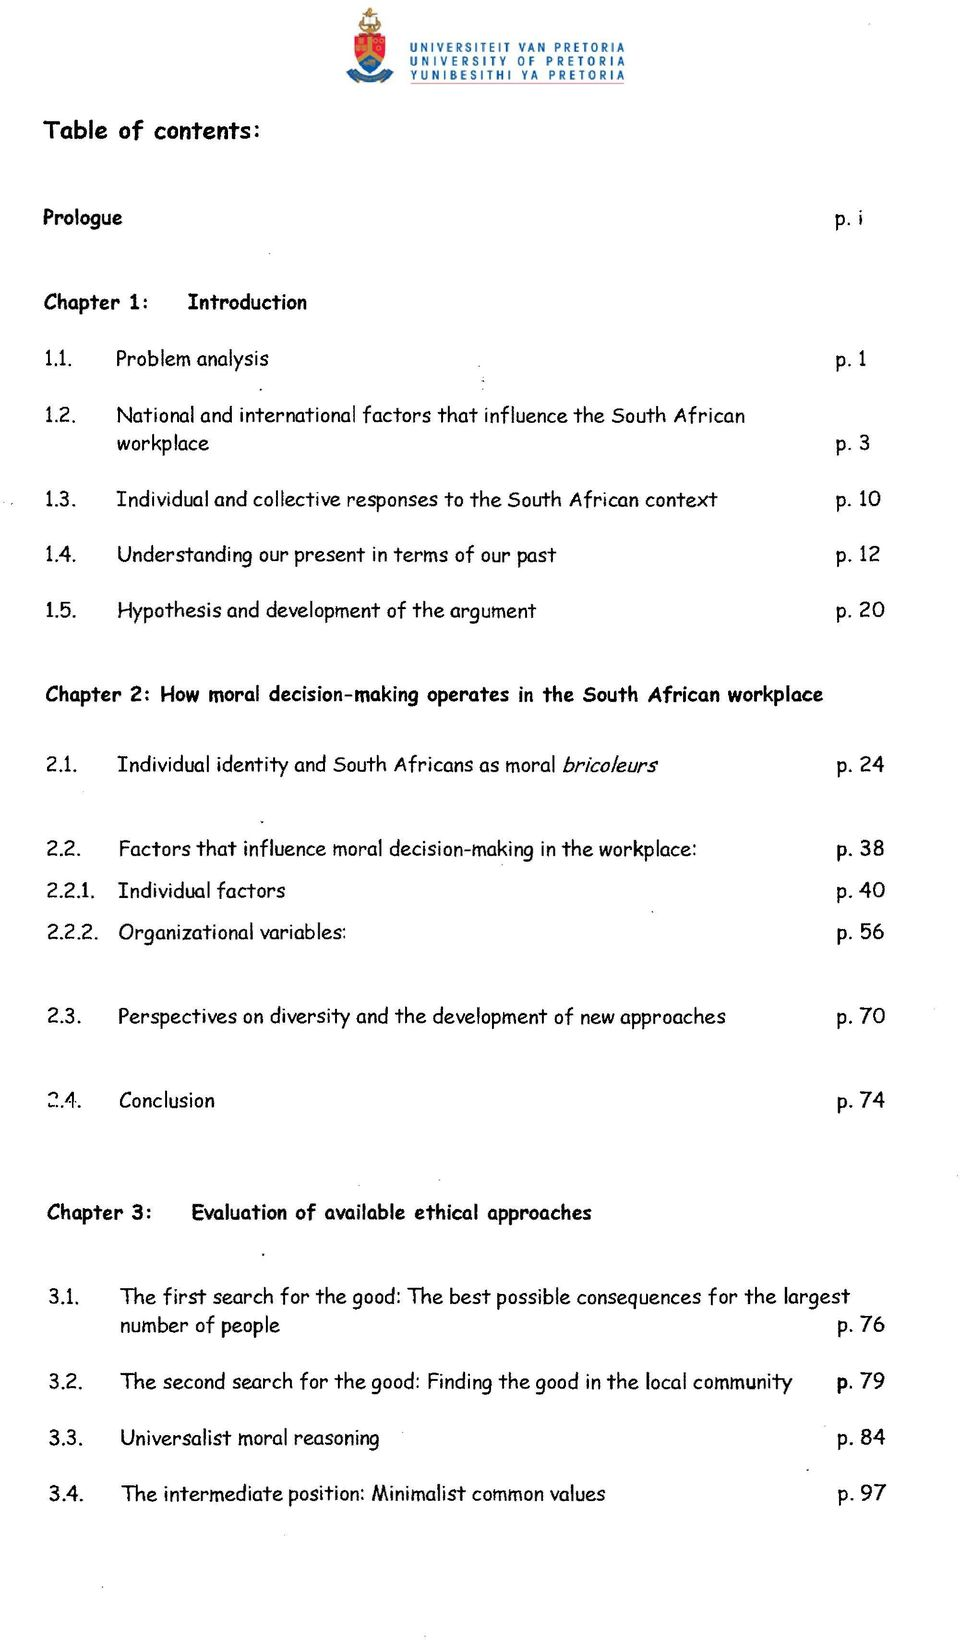 20 Chapter 2: How moral decision-making operates in the South African workplace 2.1. Individual identity and South Africans as moral bricoleurs p.24 2.2. Factors that influence moral decision-making in the workplace: p.